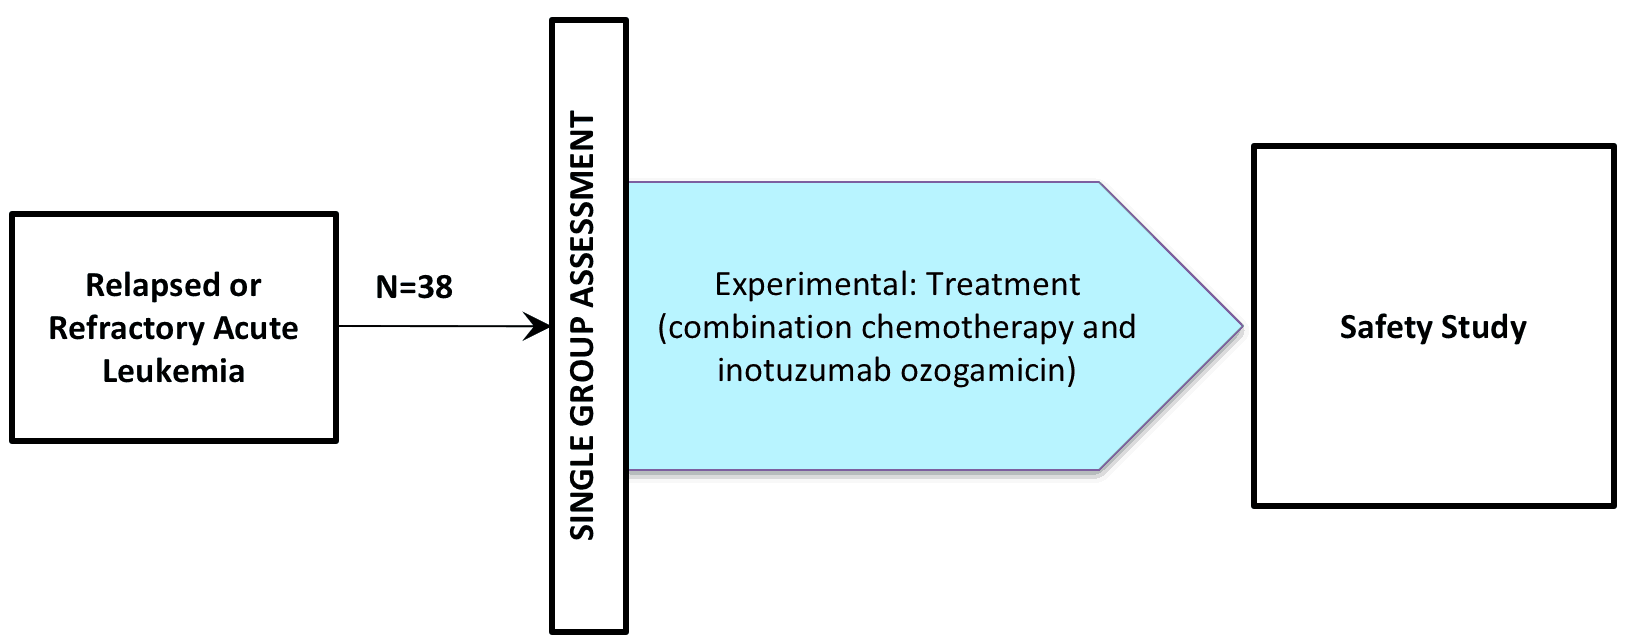 NCT01925131 (Clinical Trial / Inotuzumab ozogamycin / CMC-544)